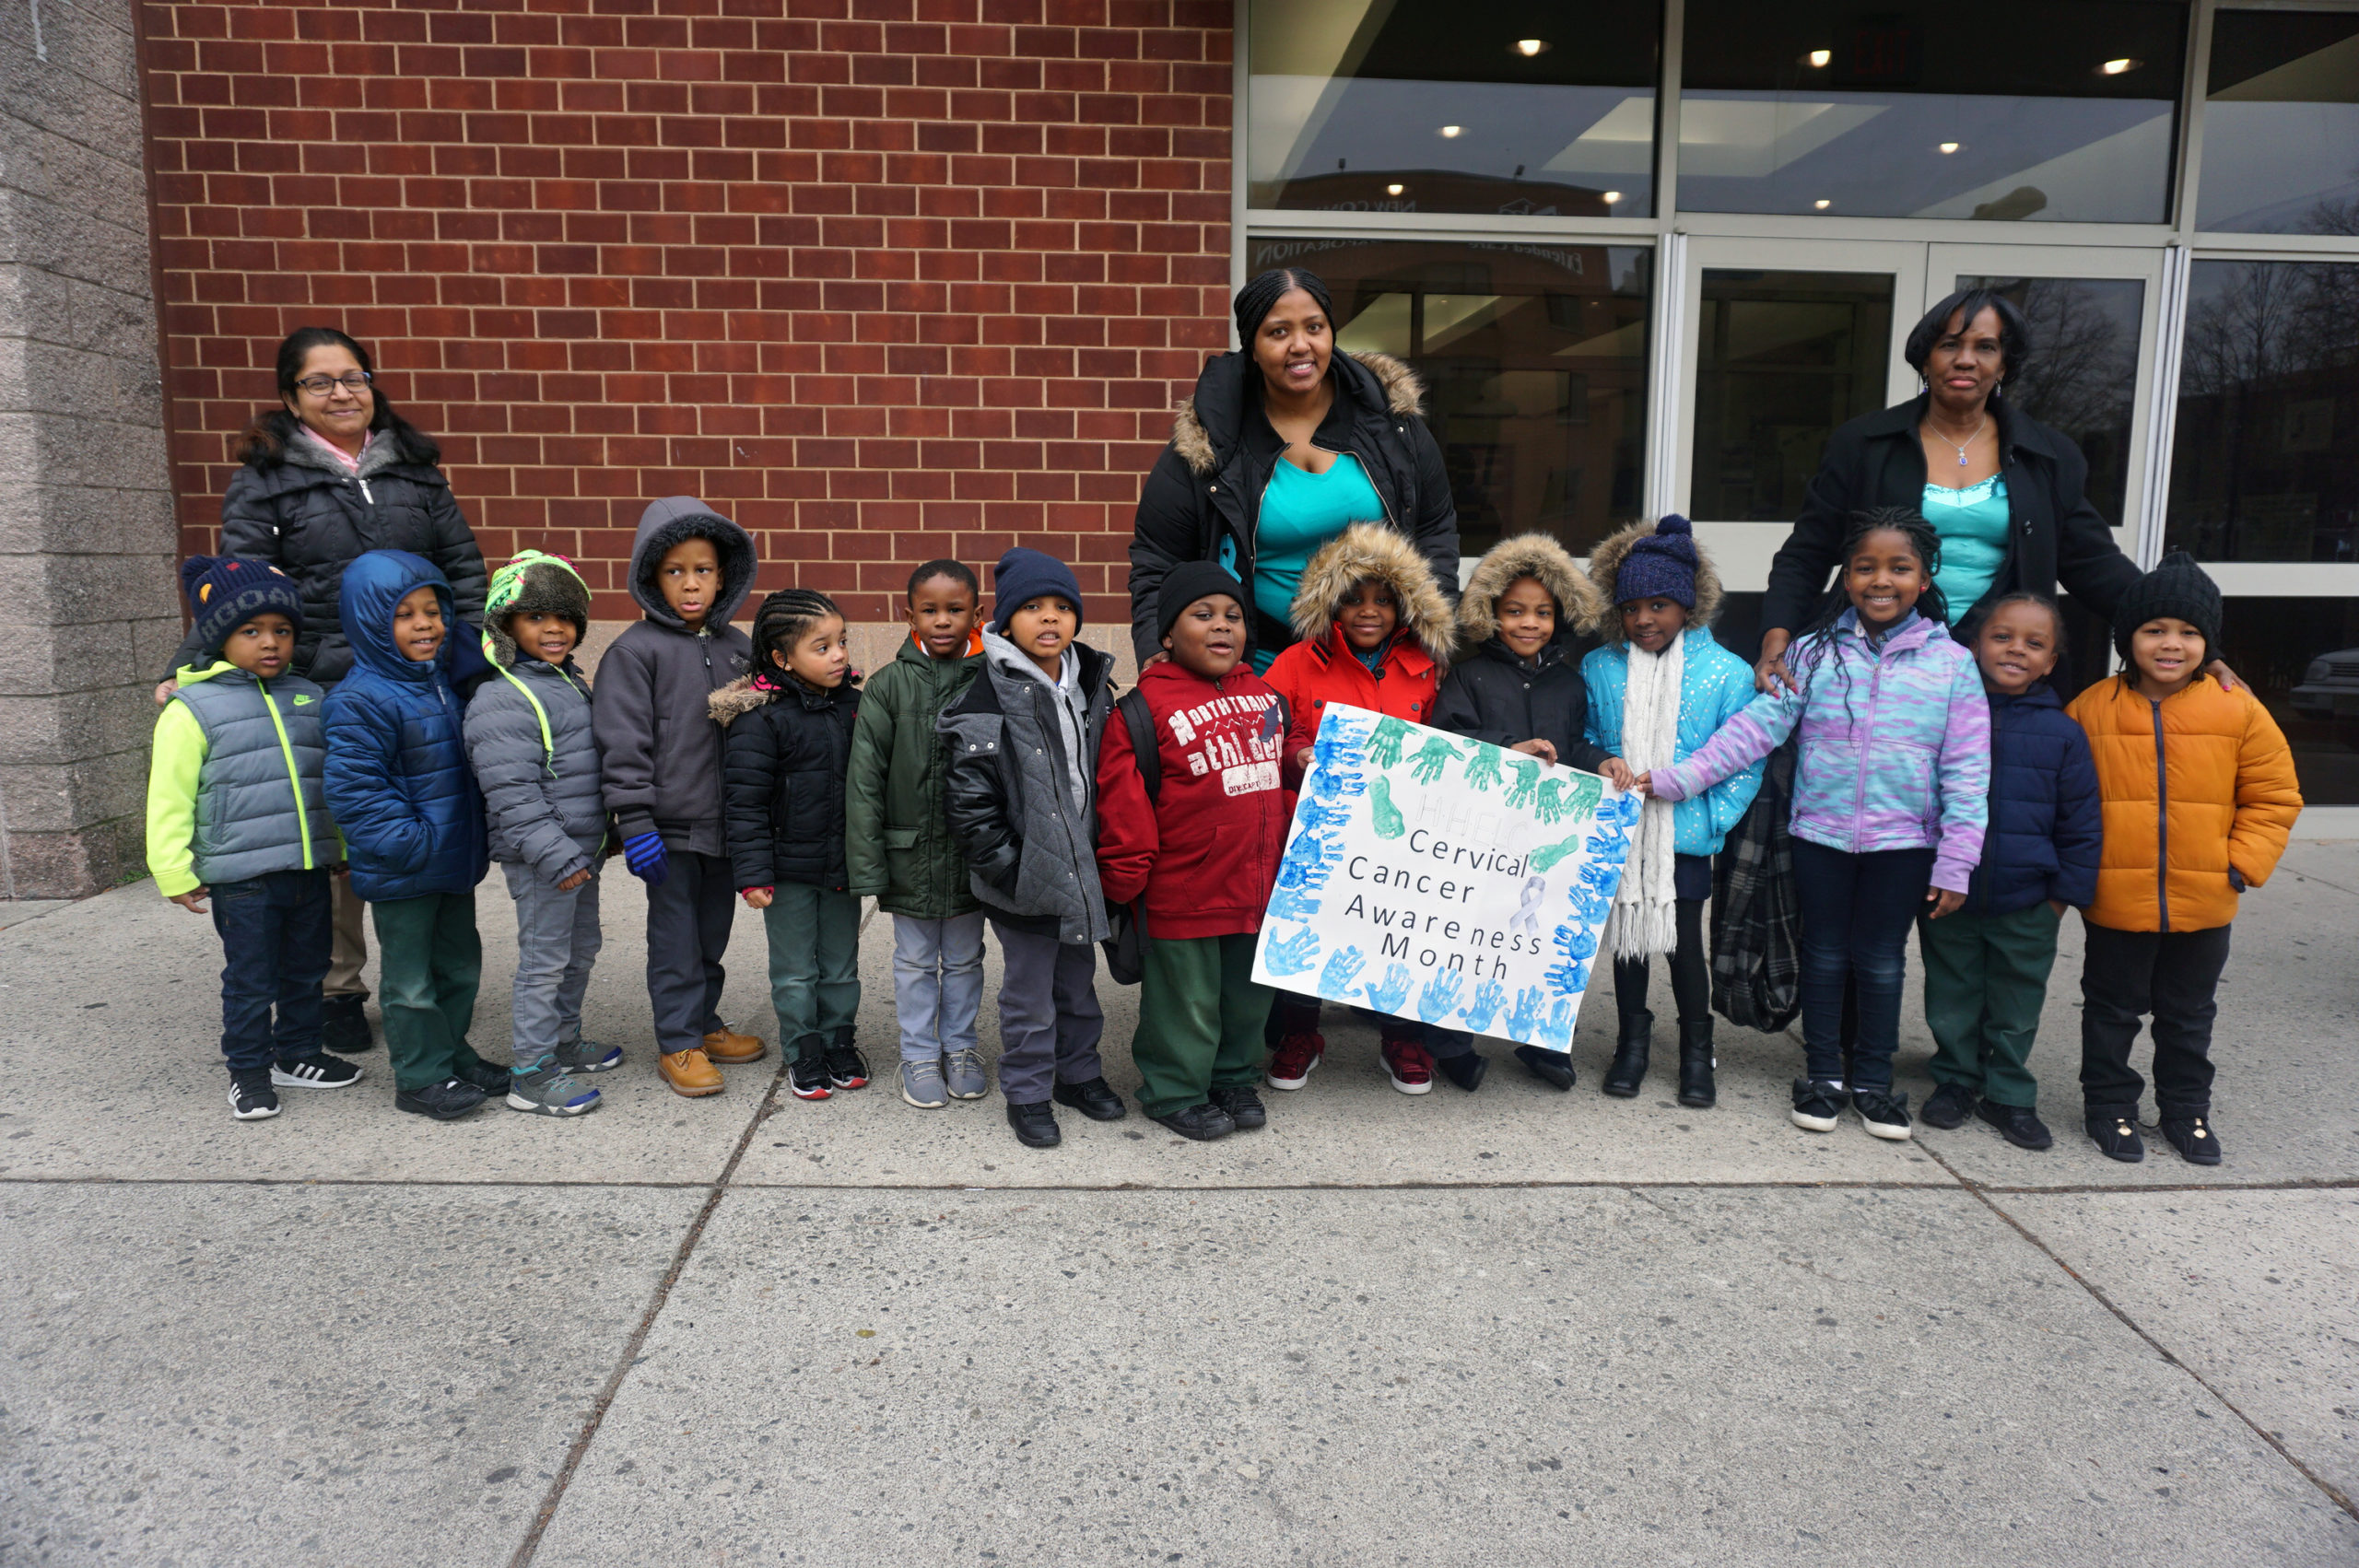 HHELC-Cervical-Cancer-March-Pre-K-Class